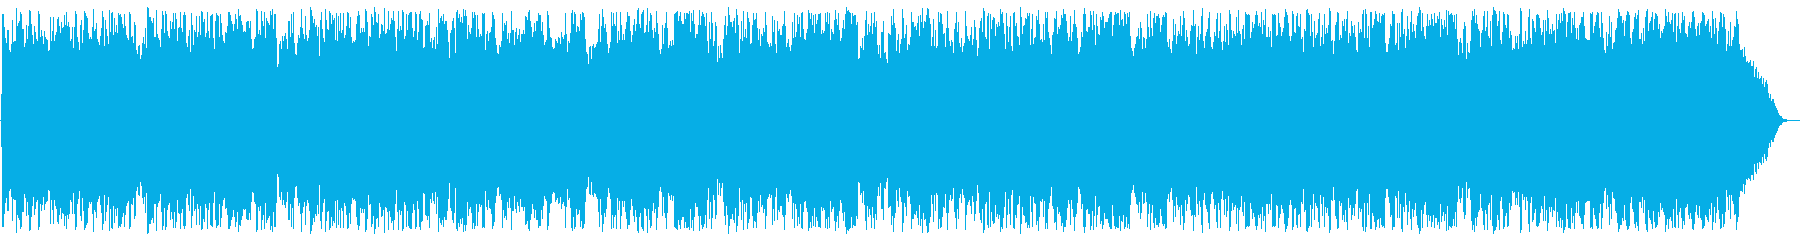 The Lord that gives perfect love (Hymns)'s reproduced waveform